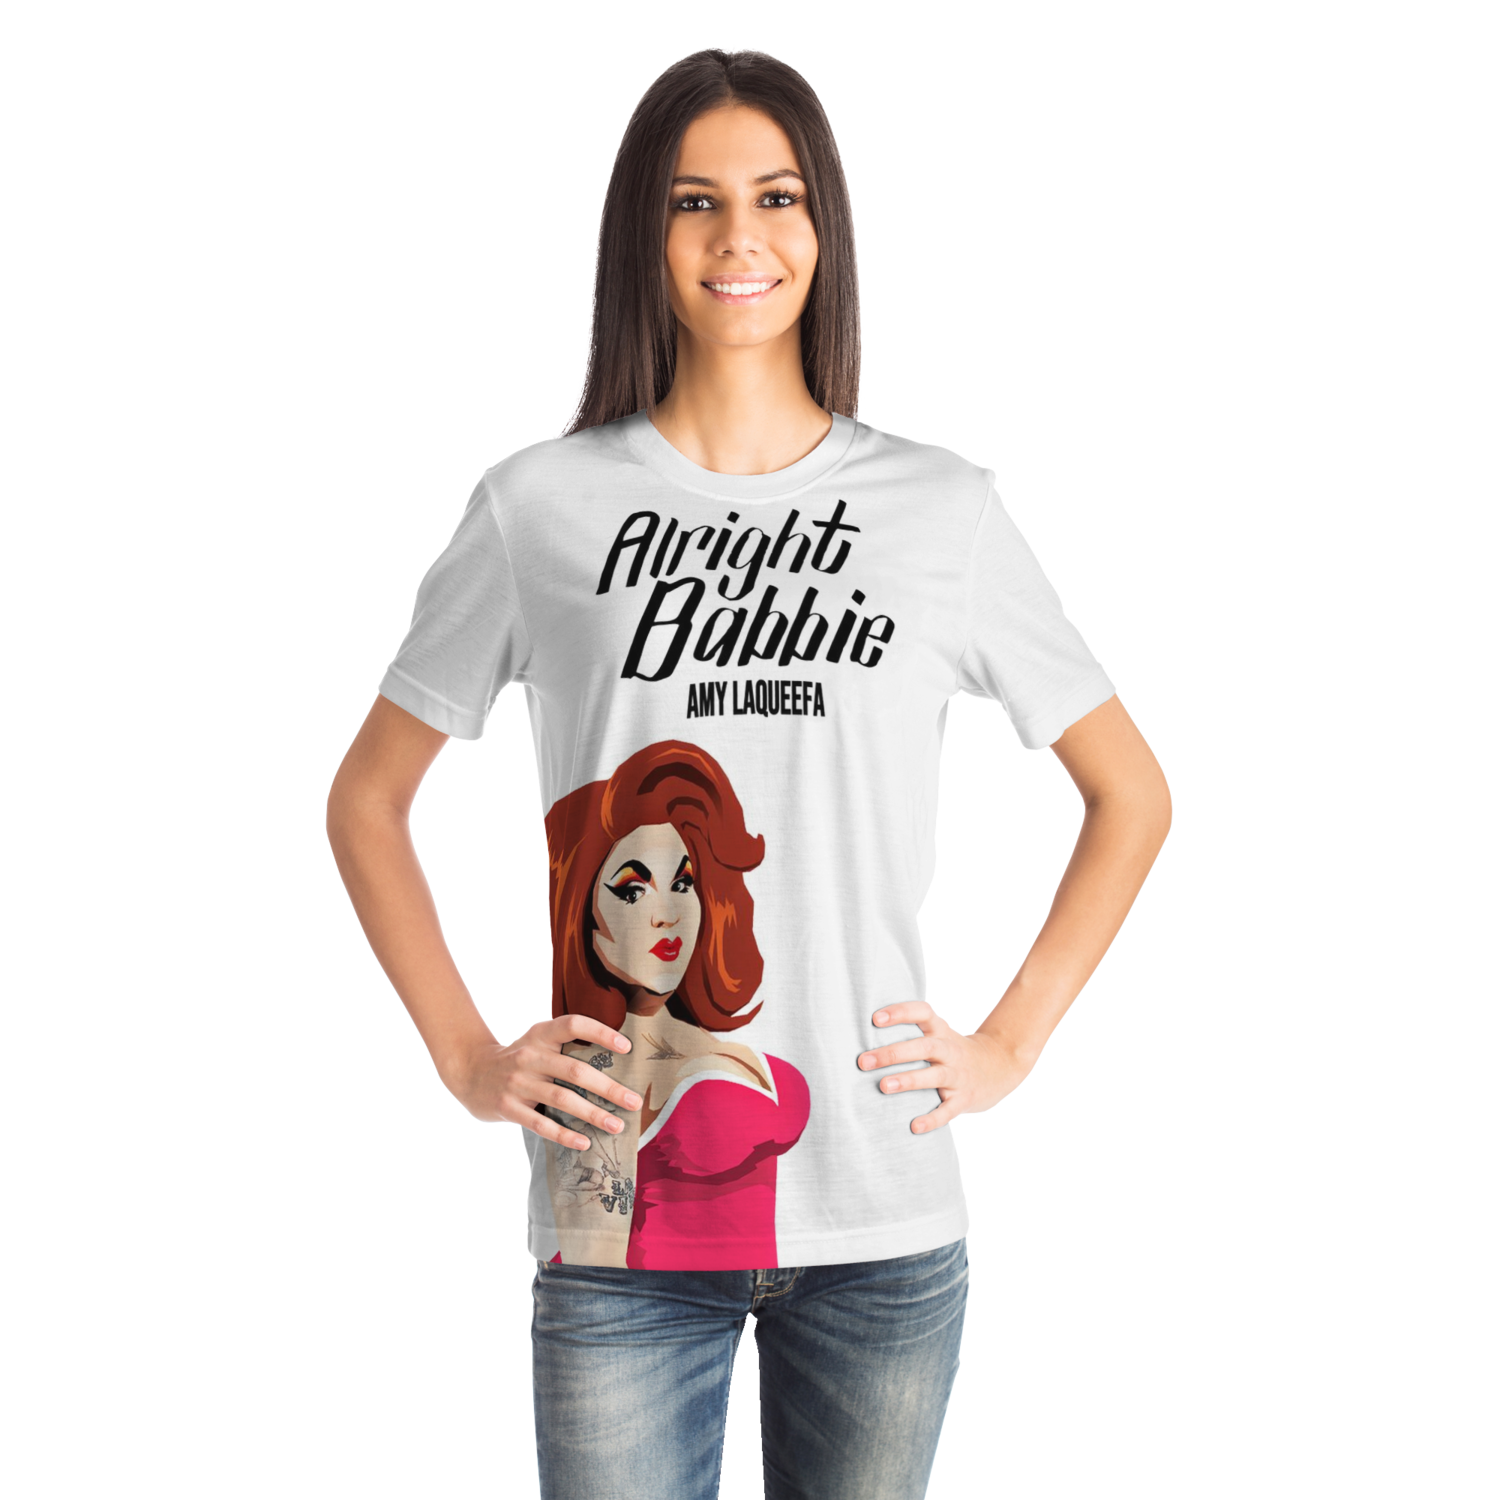 Alright Babbie, Amy LaQueefa t-shirt